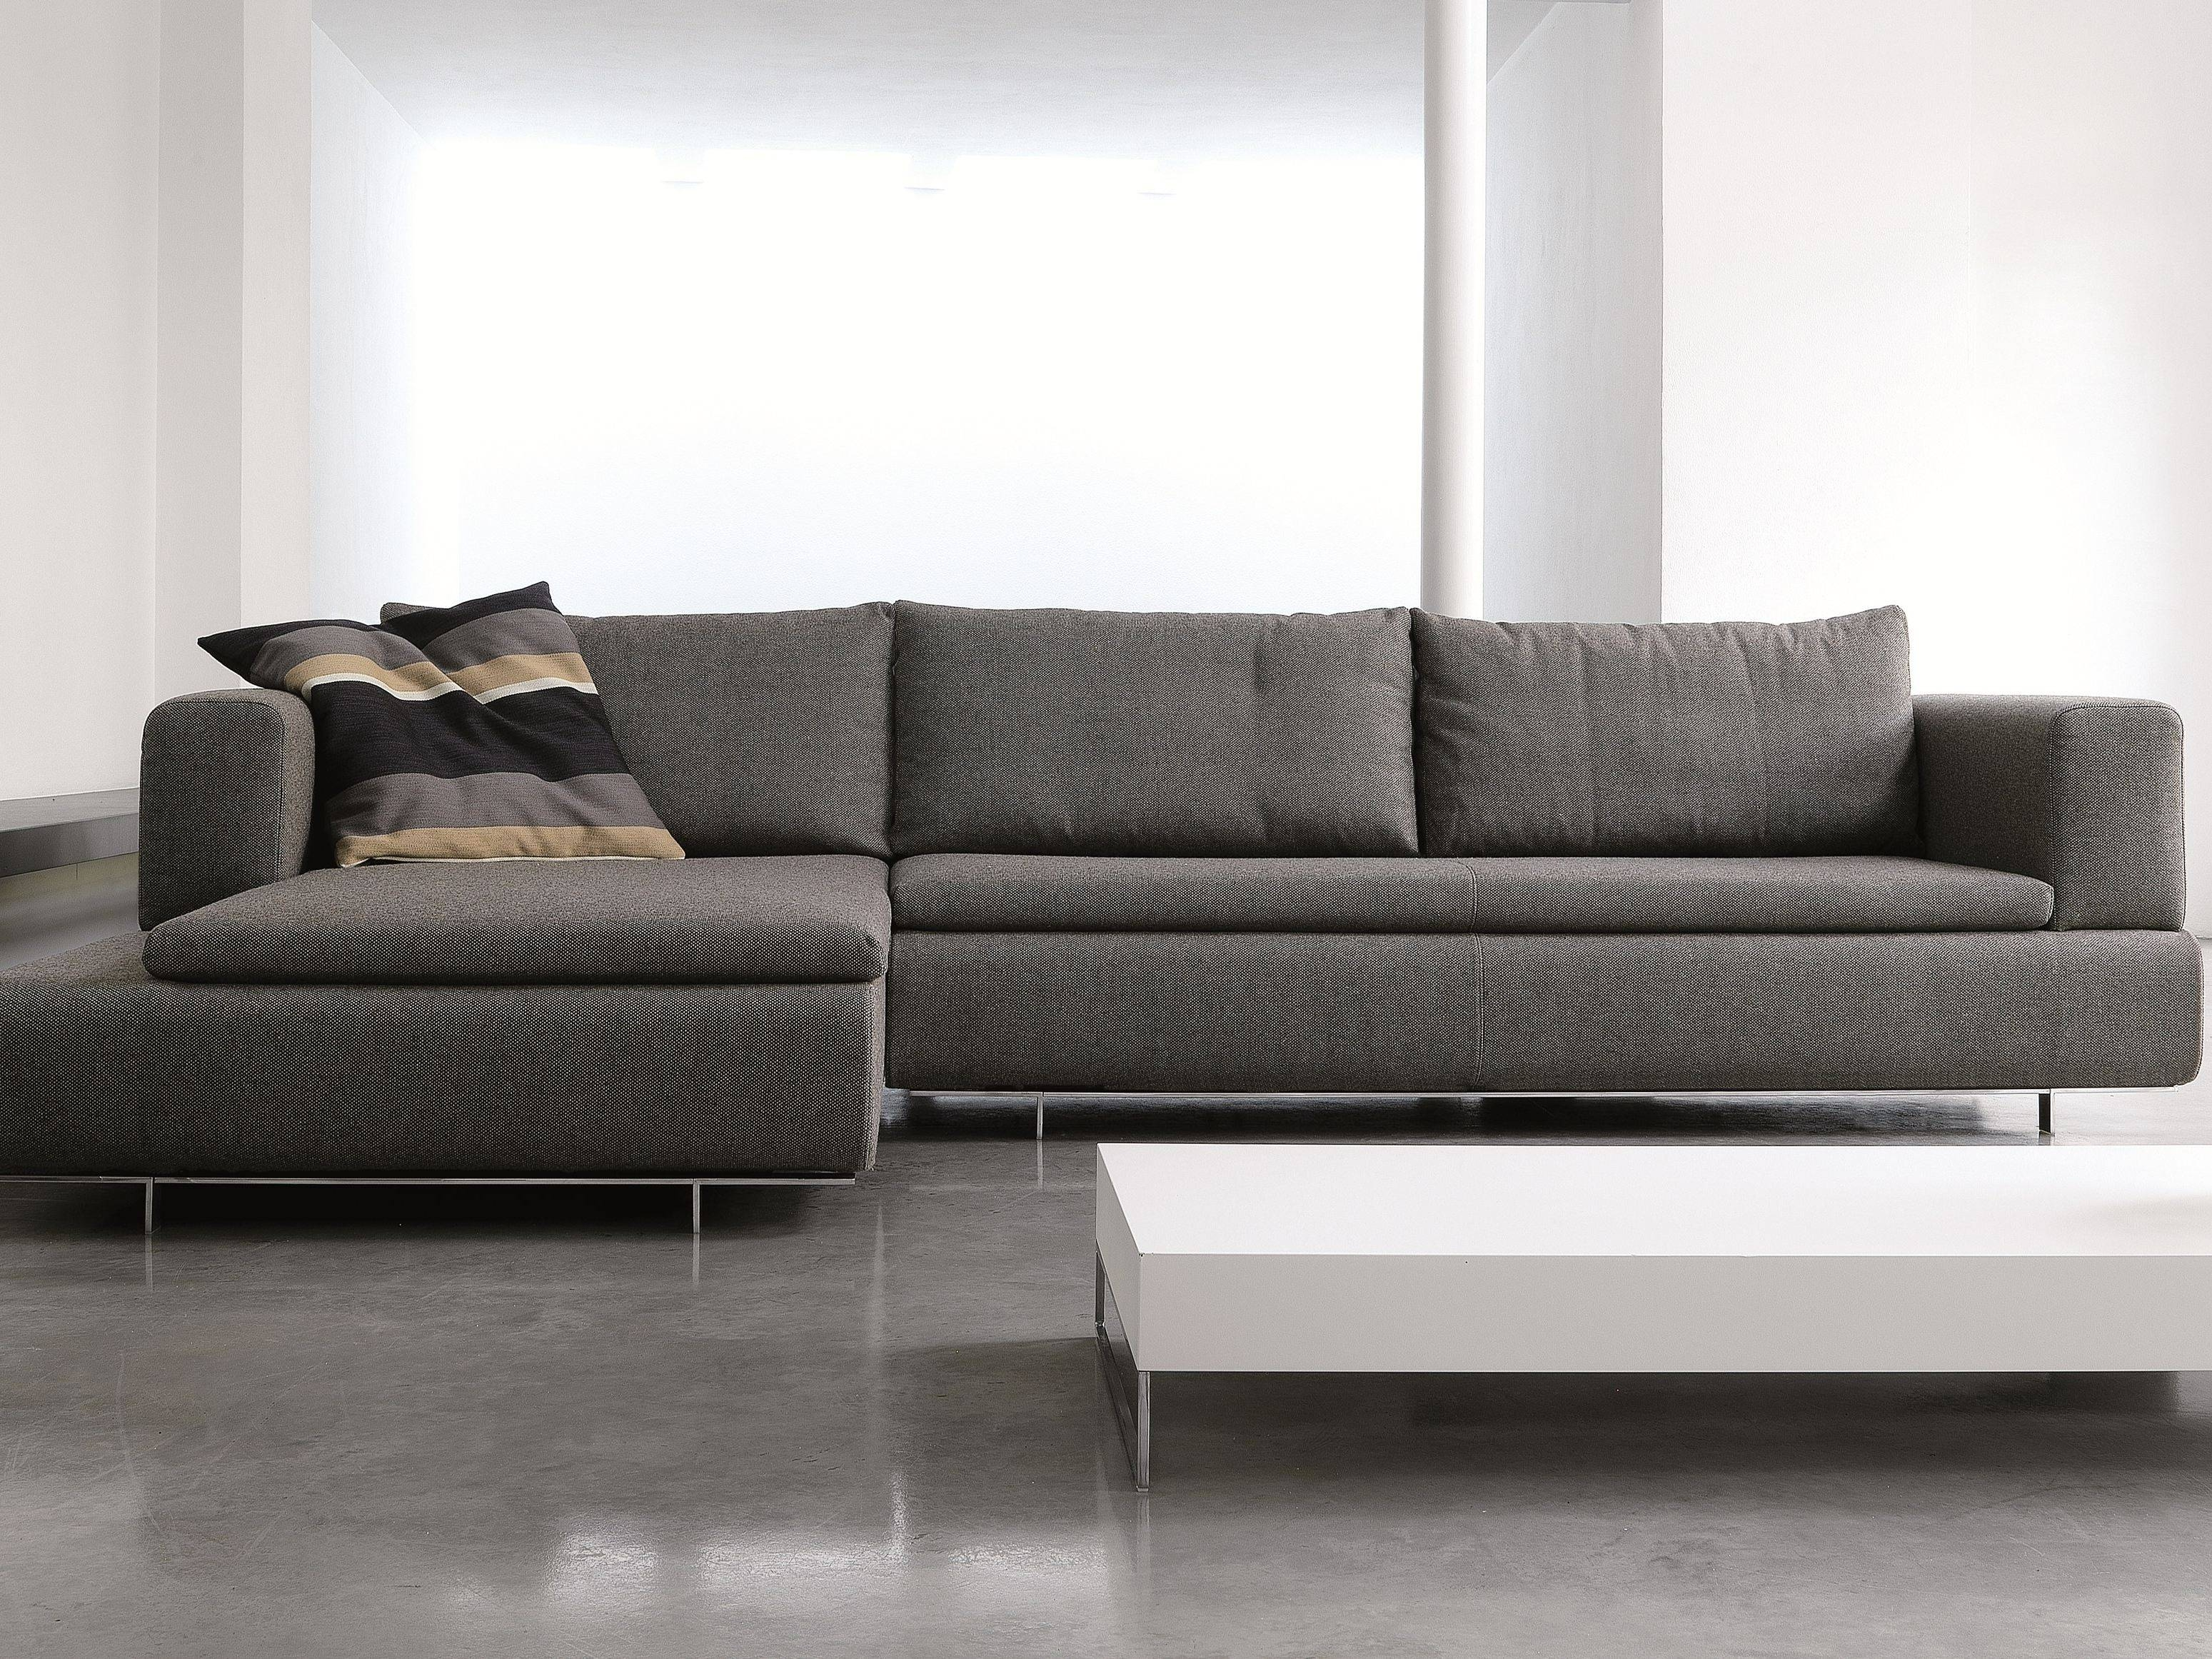 485 Forum | Sofa With Chaise Longuevibieffe Design Gianluigi throughout Sofas With Chaise Longue (Image 1 of 30)